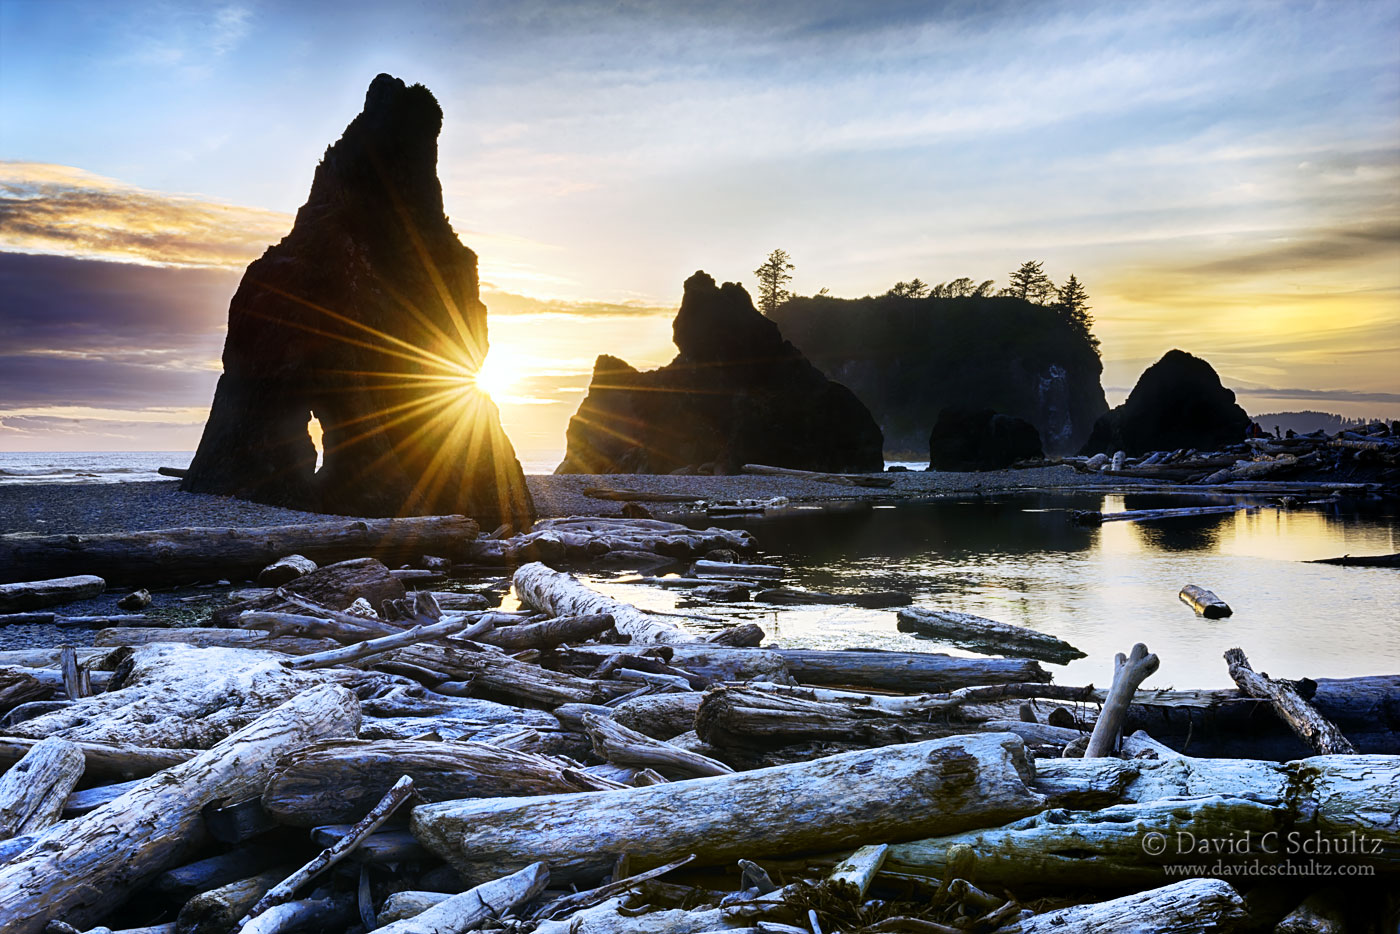 Ruby Beach, Washington - Image #136-4856